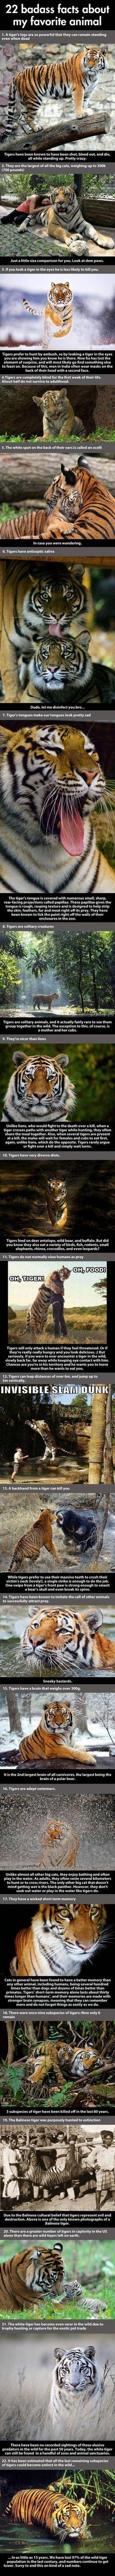 Tiger Facts ~ donate to wildlife conservation to save these precious creatures from extinction!: 22 Badass, Animals, Big Cats, Badass Facts, Favorite Animal, Tigers, Awesome Tiger, Tiger Facts, 22 Facts